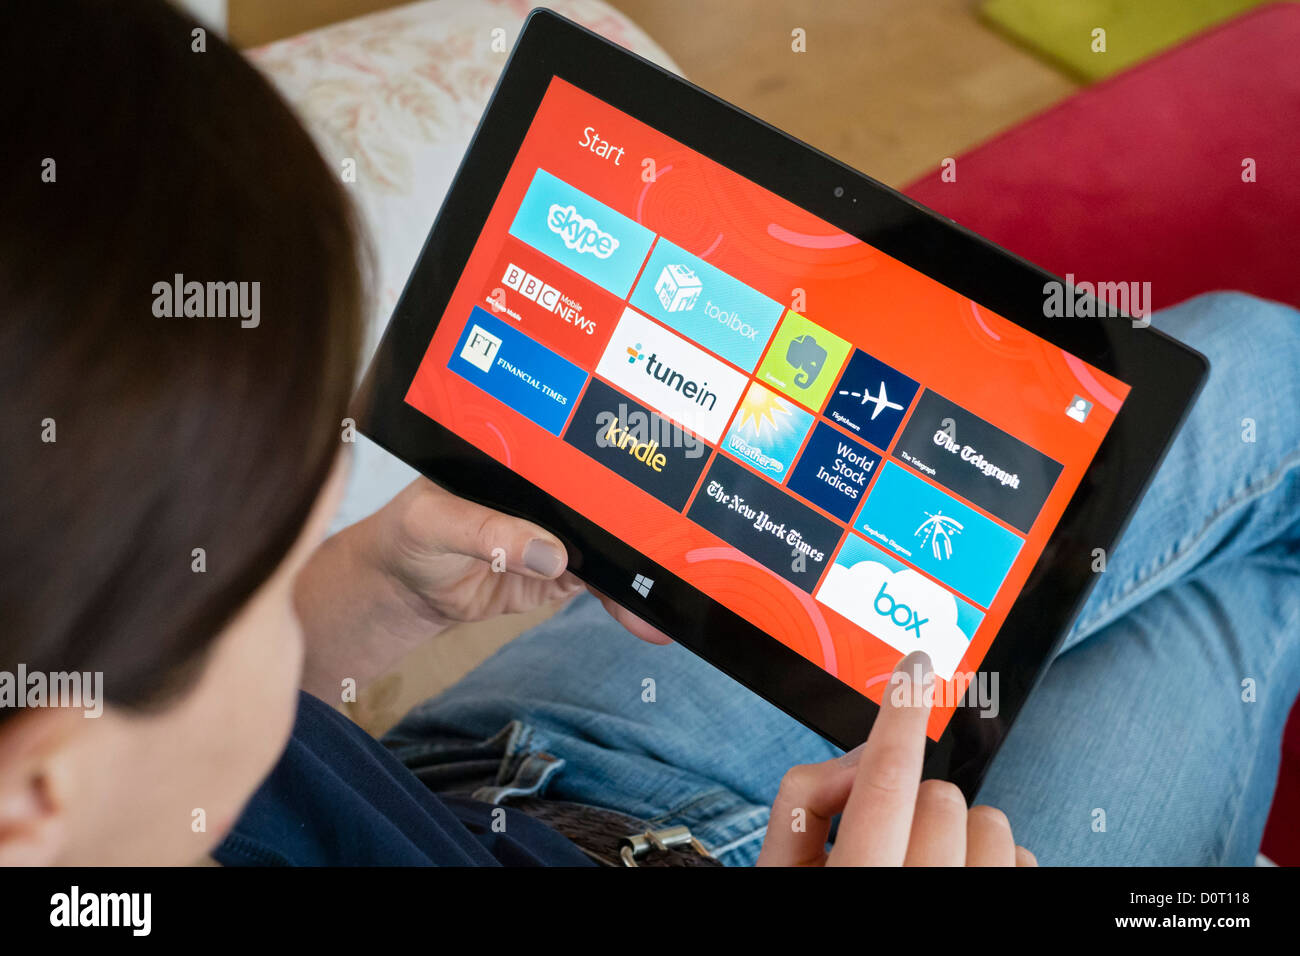 Windows 8 Stock Photos & Windows 8 Stock Images - Alamy